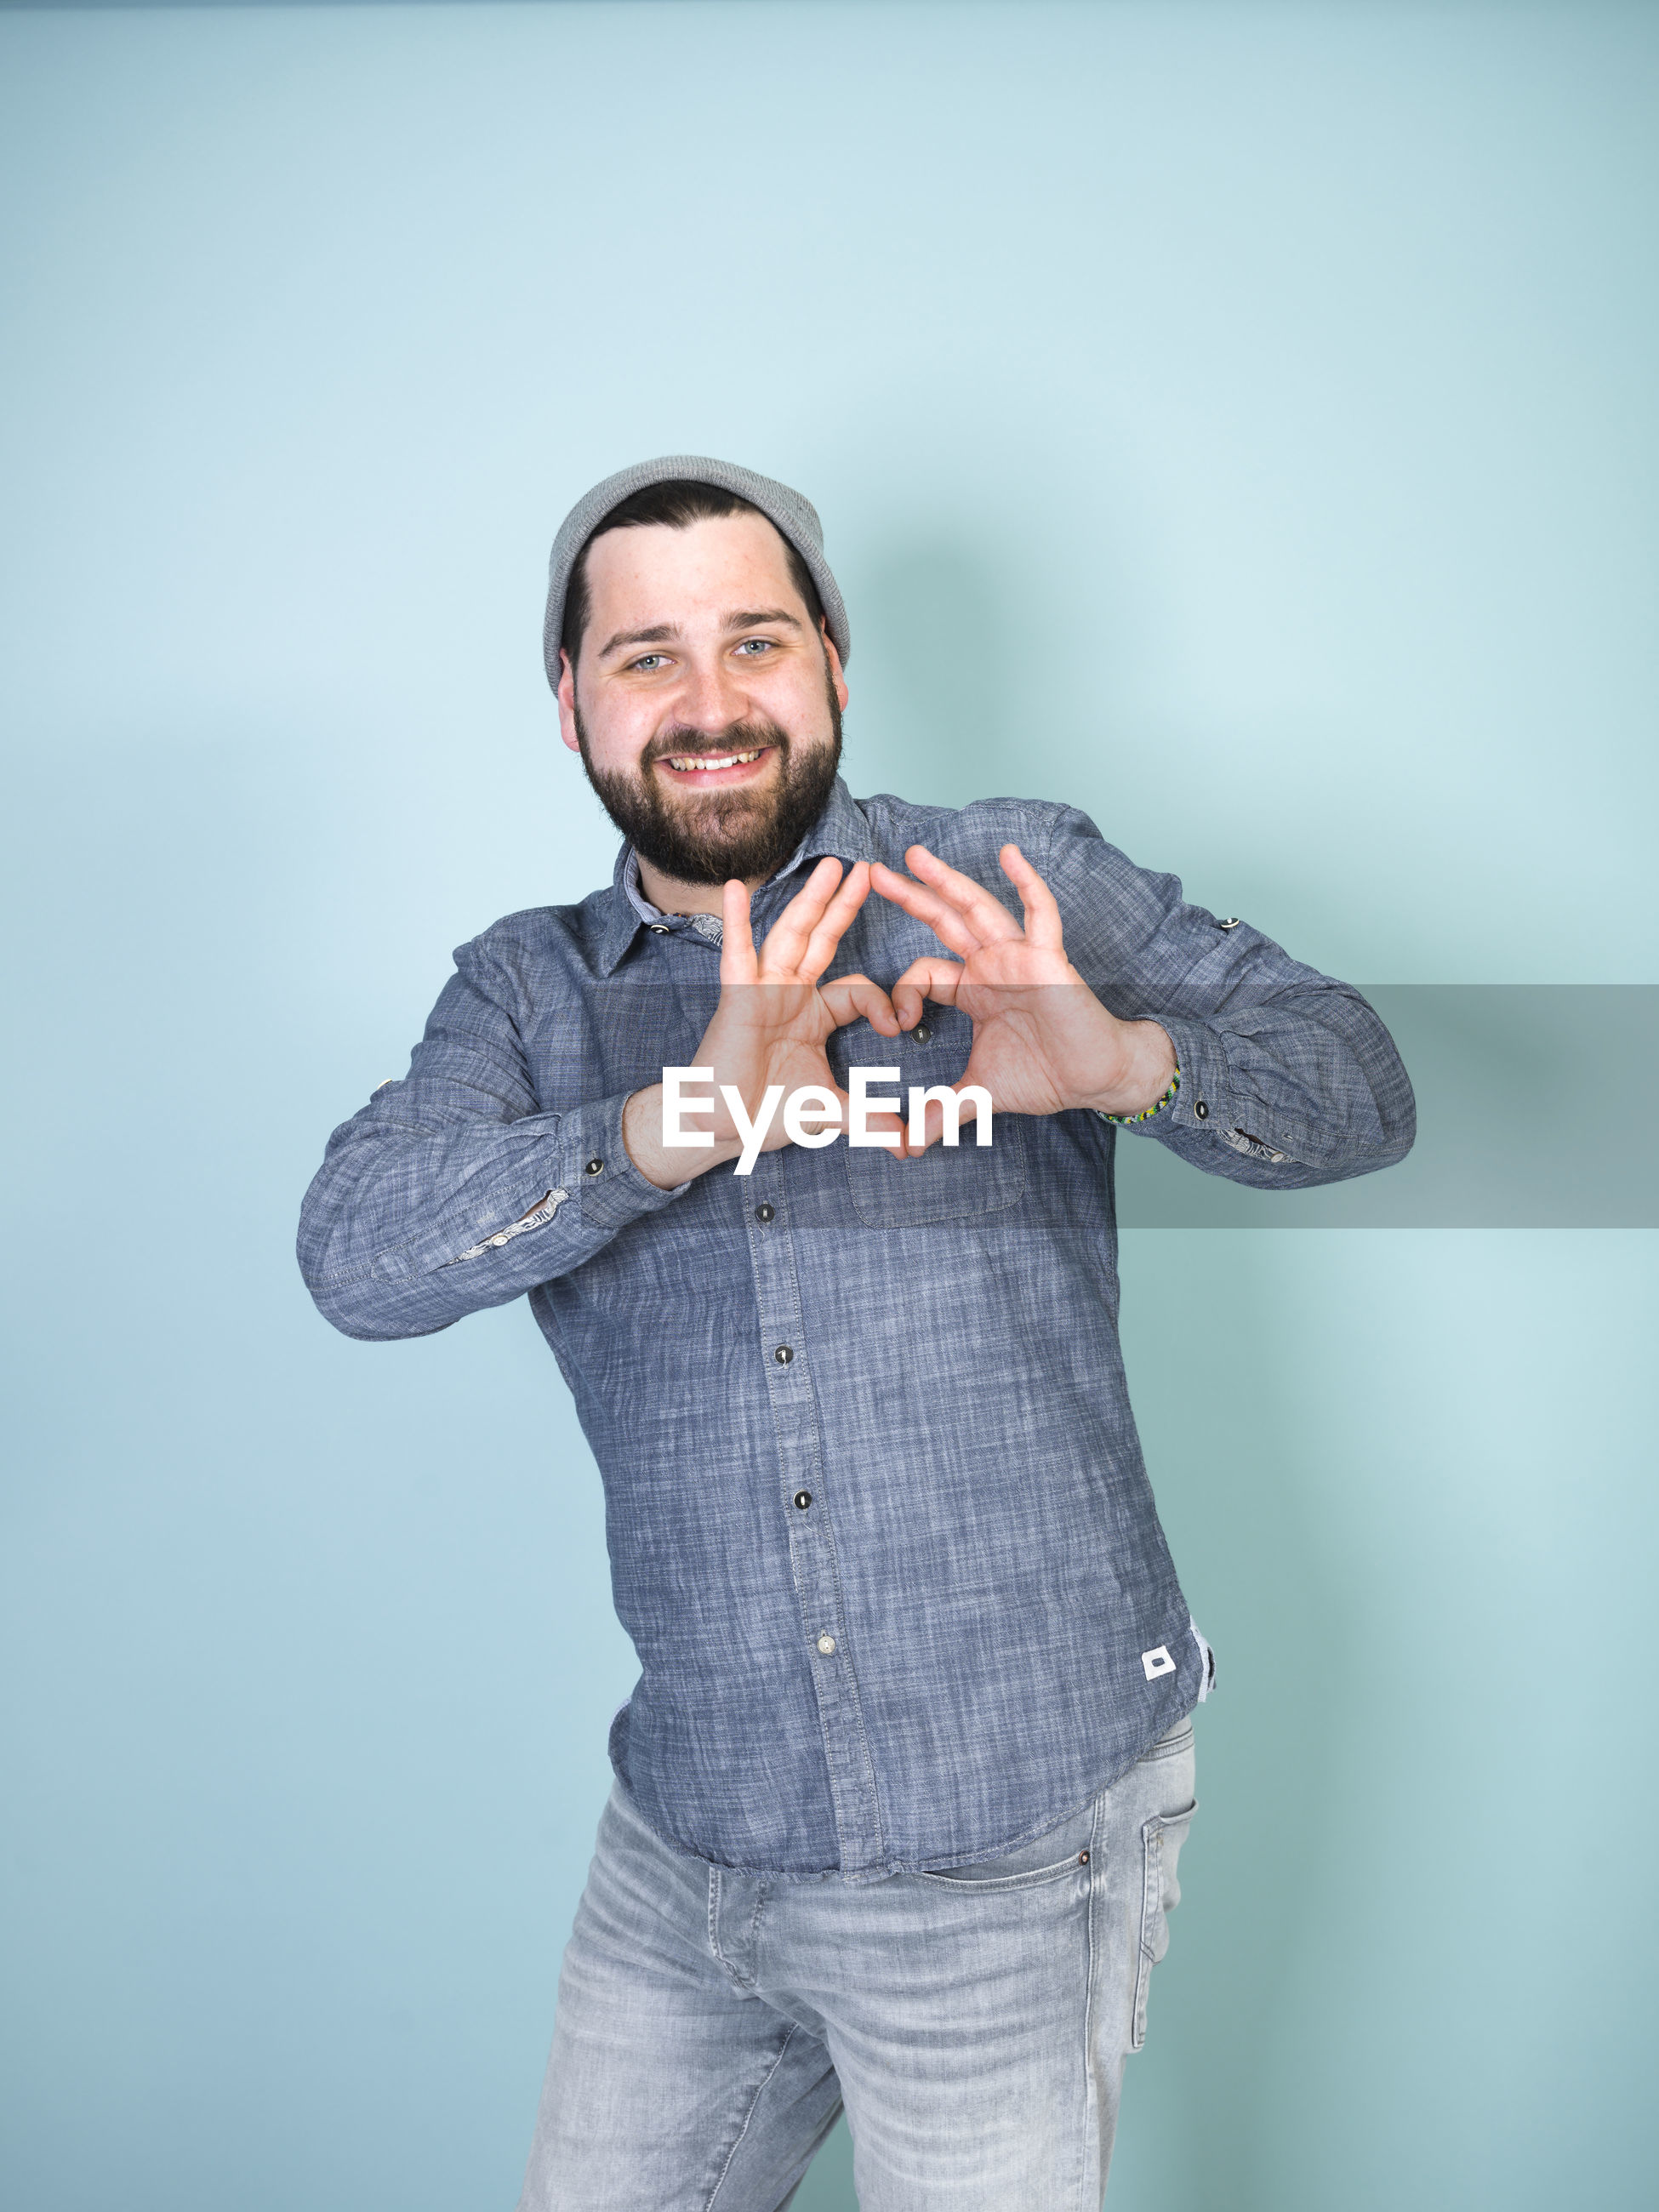 Portrait of smiling man making heart shape with hands against blue background